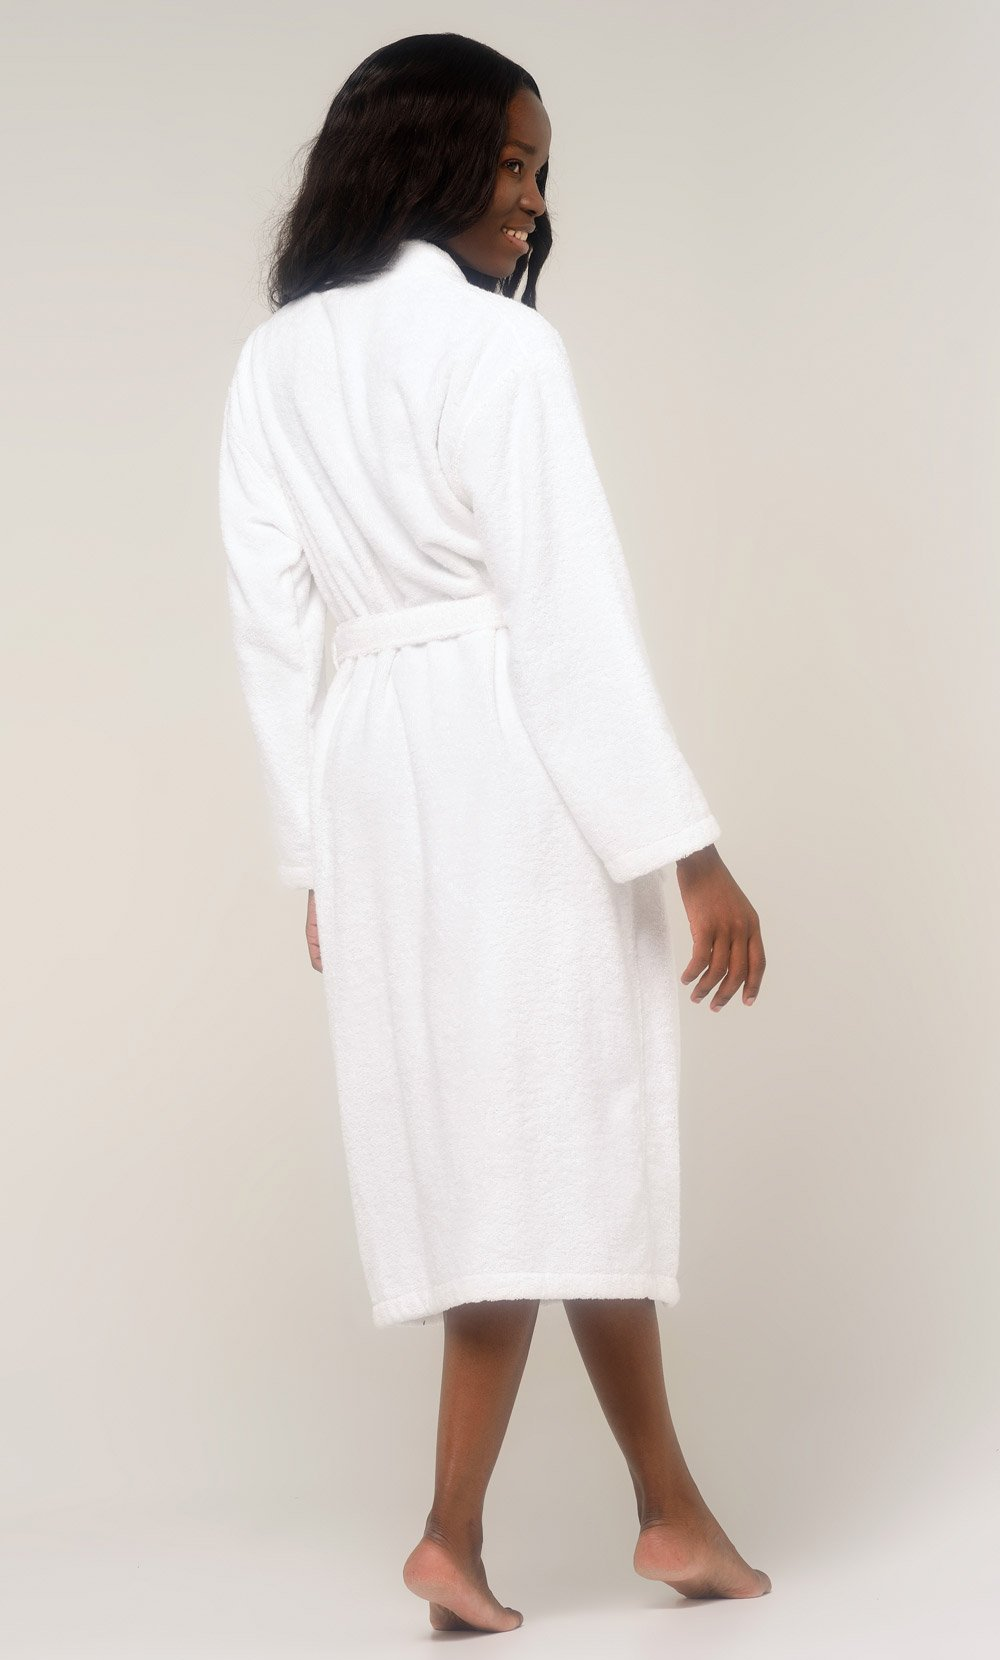 100% Turkish Cotton White Terry Kimono Bathrobe-Robemart.com